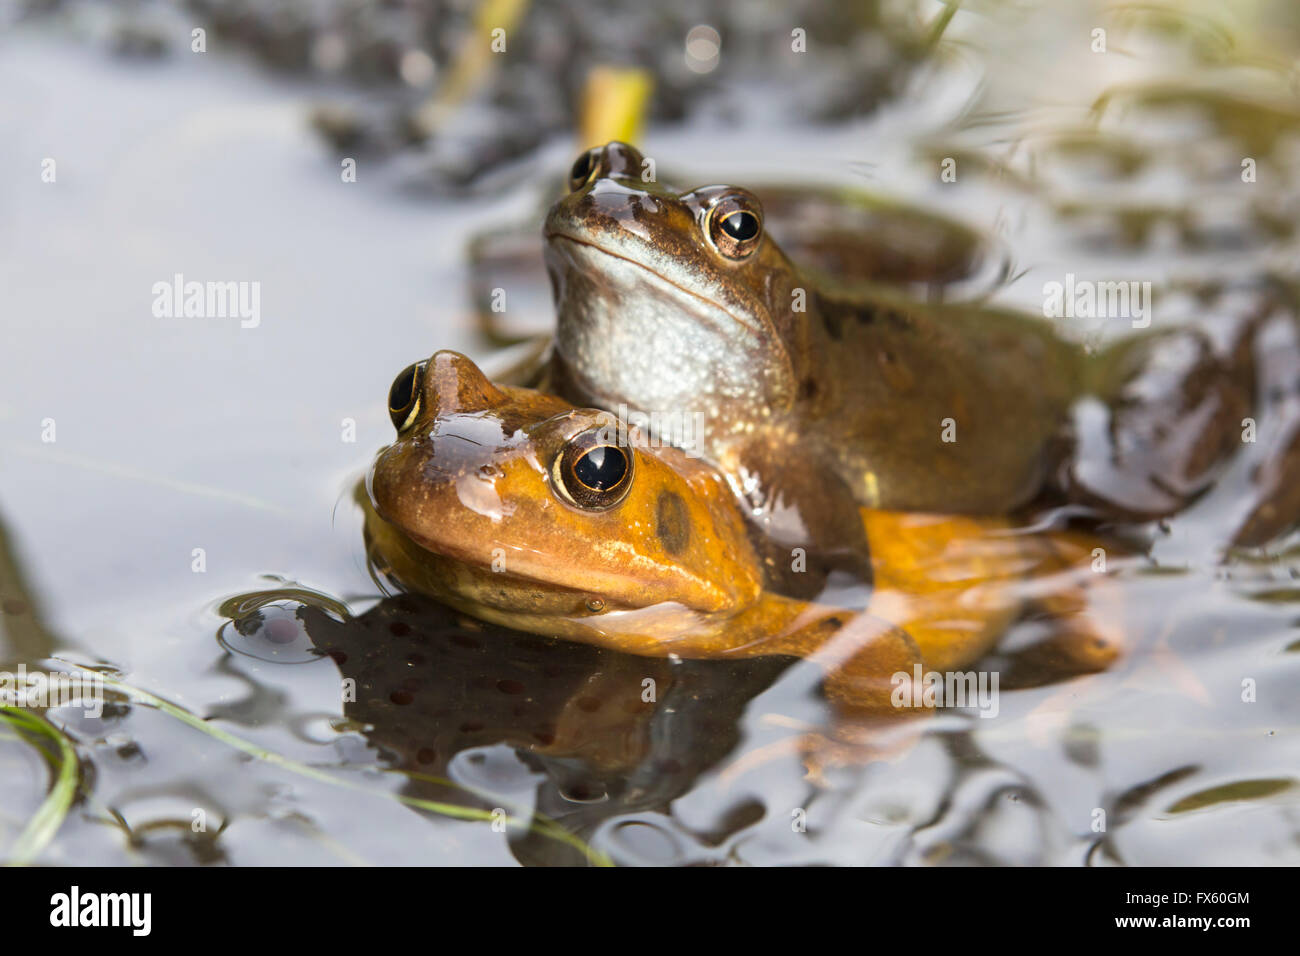 Common frogs (Rana temporaria) mating, Northumberland, UK - Stock Image